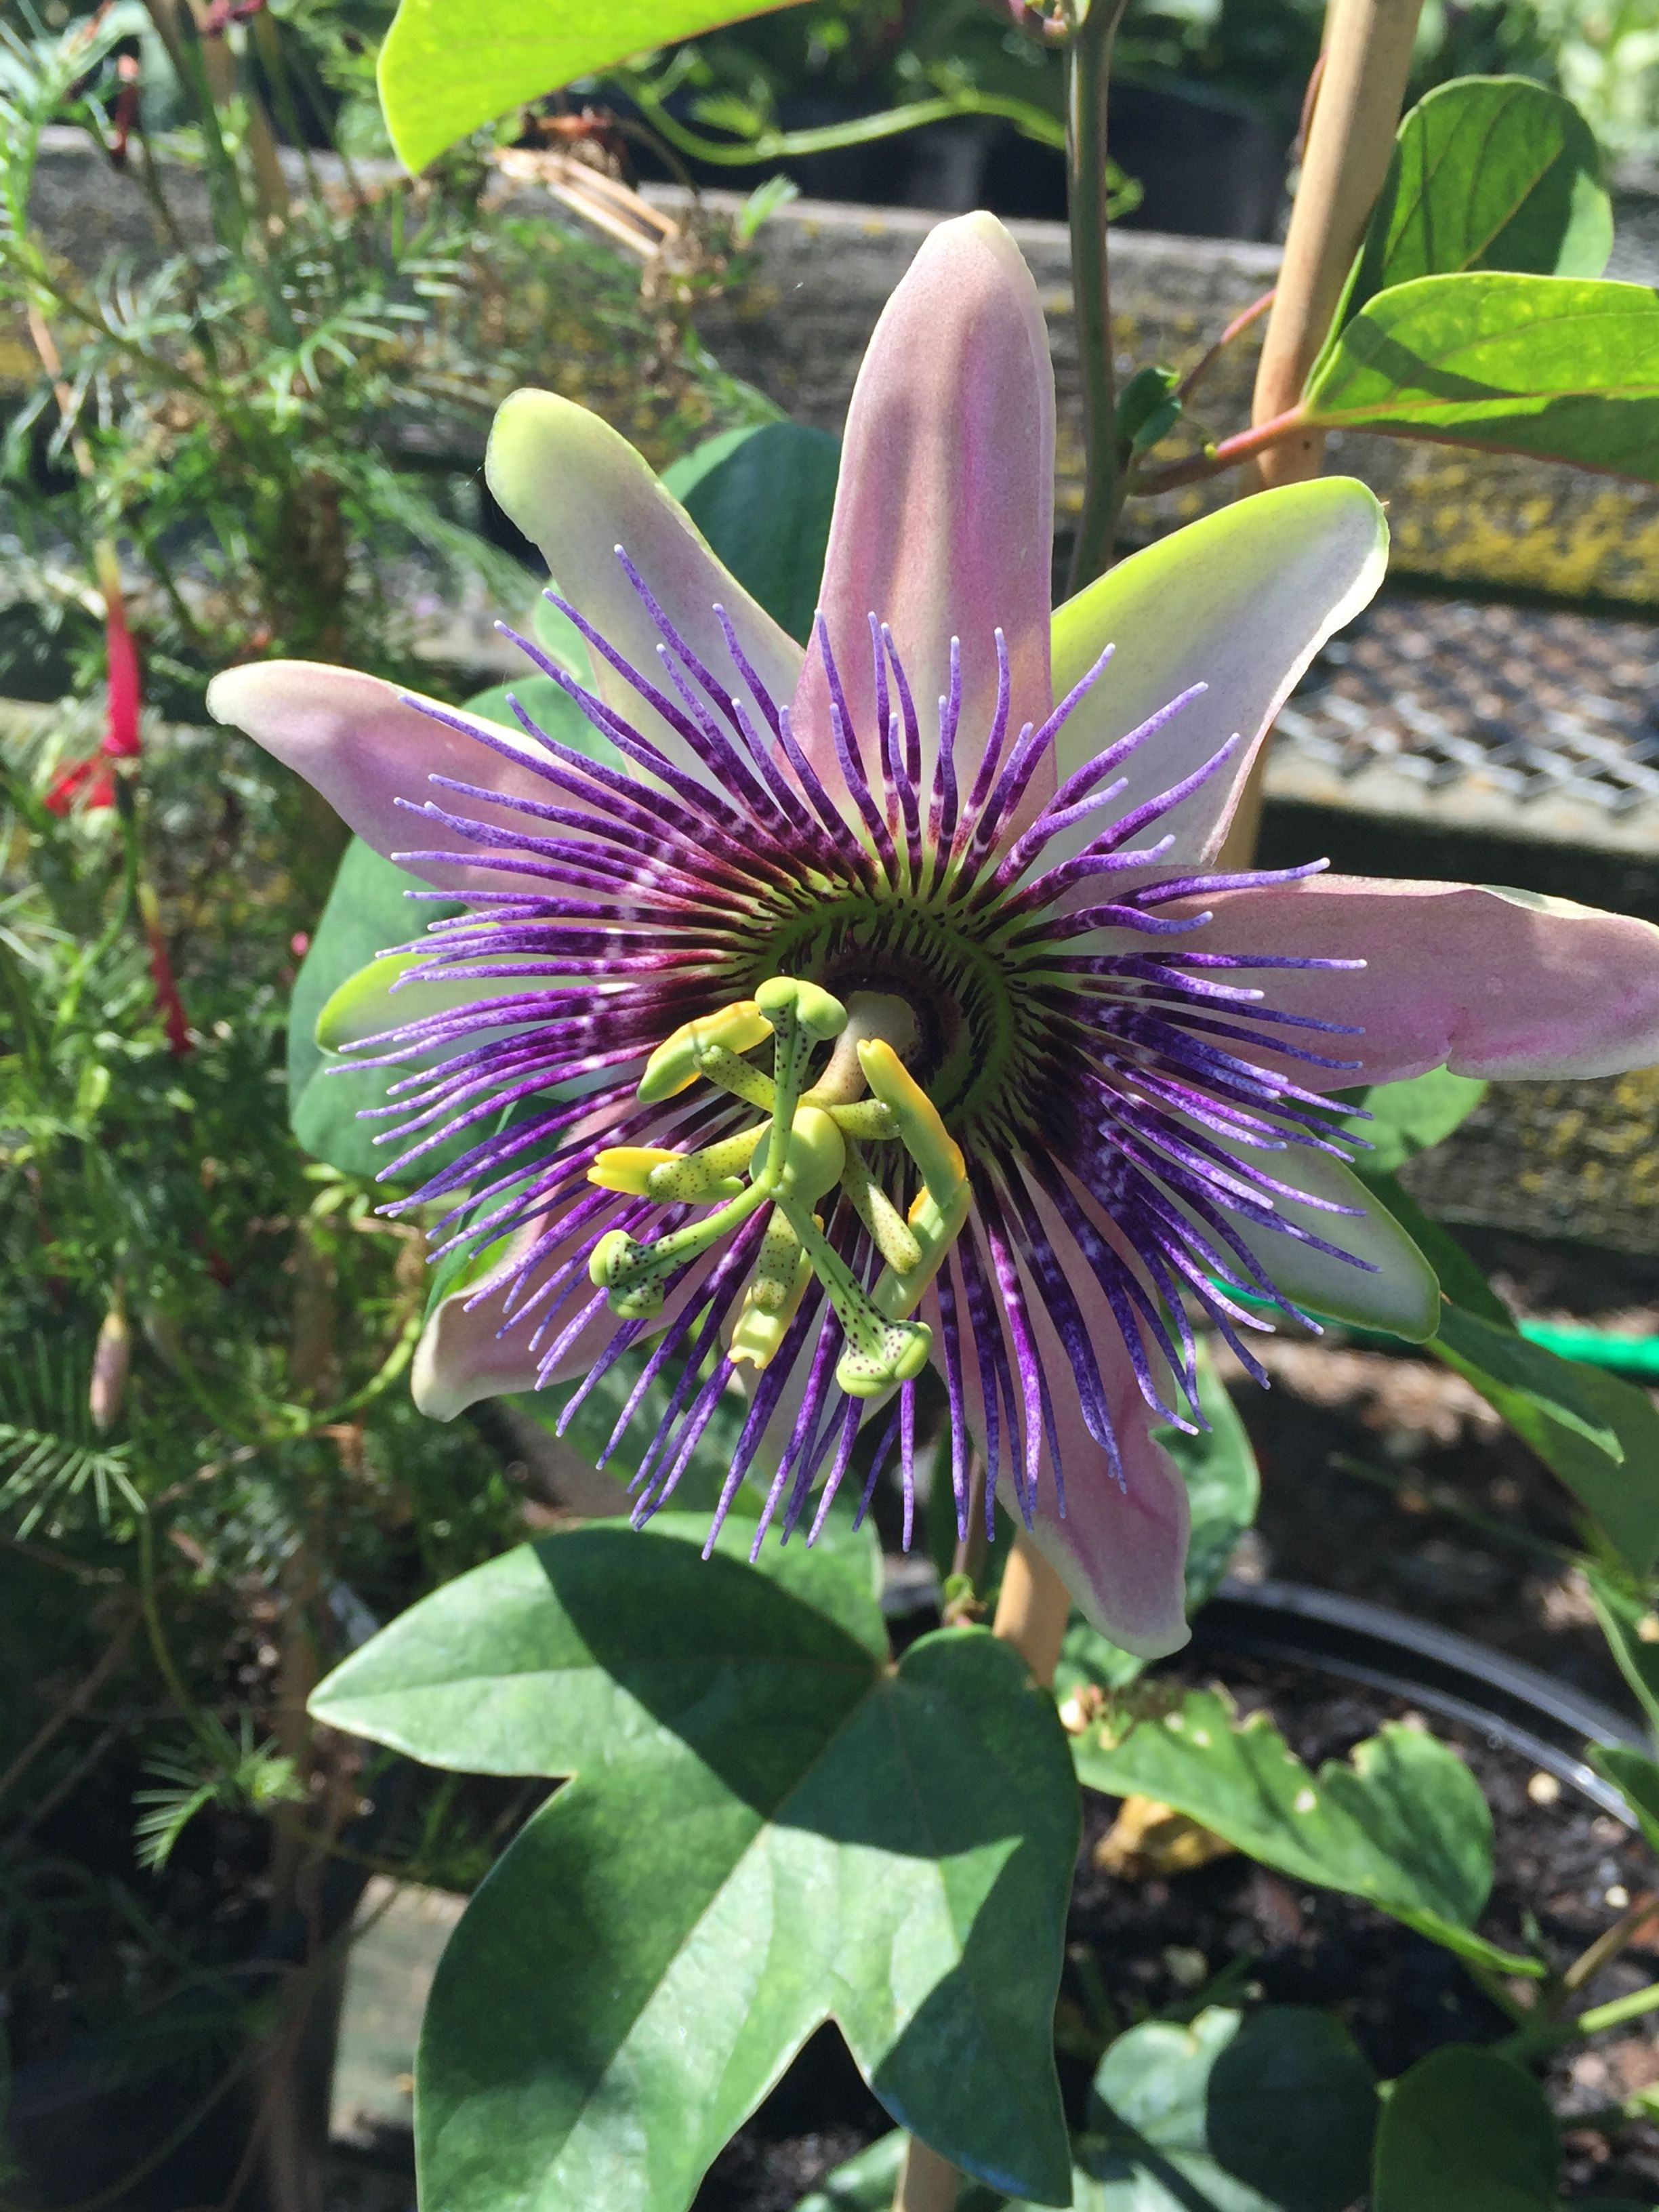 Passion Flower Meadsnursery Passion Flower Flowers Plants